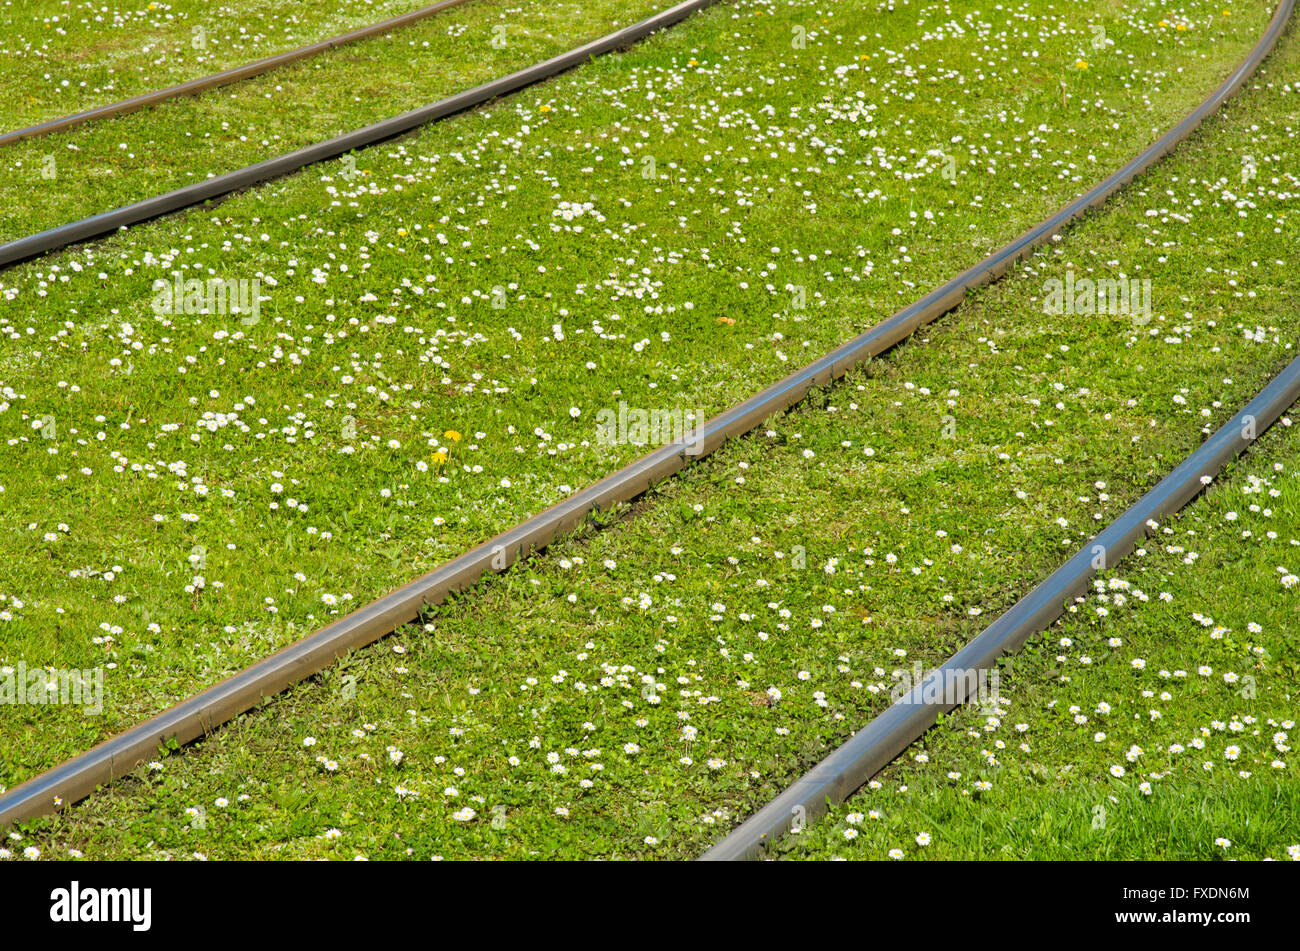 Rails on a green meadow with many daisies - Stock Image